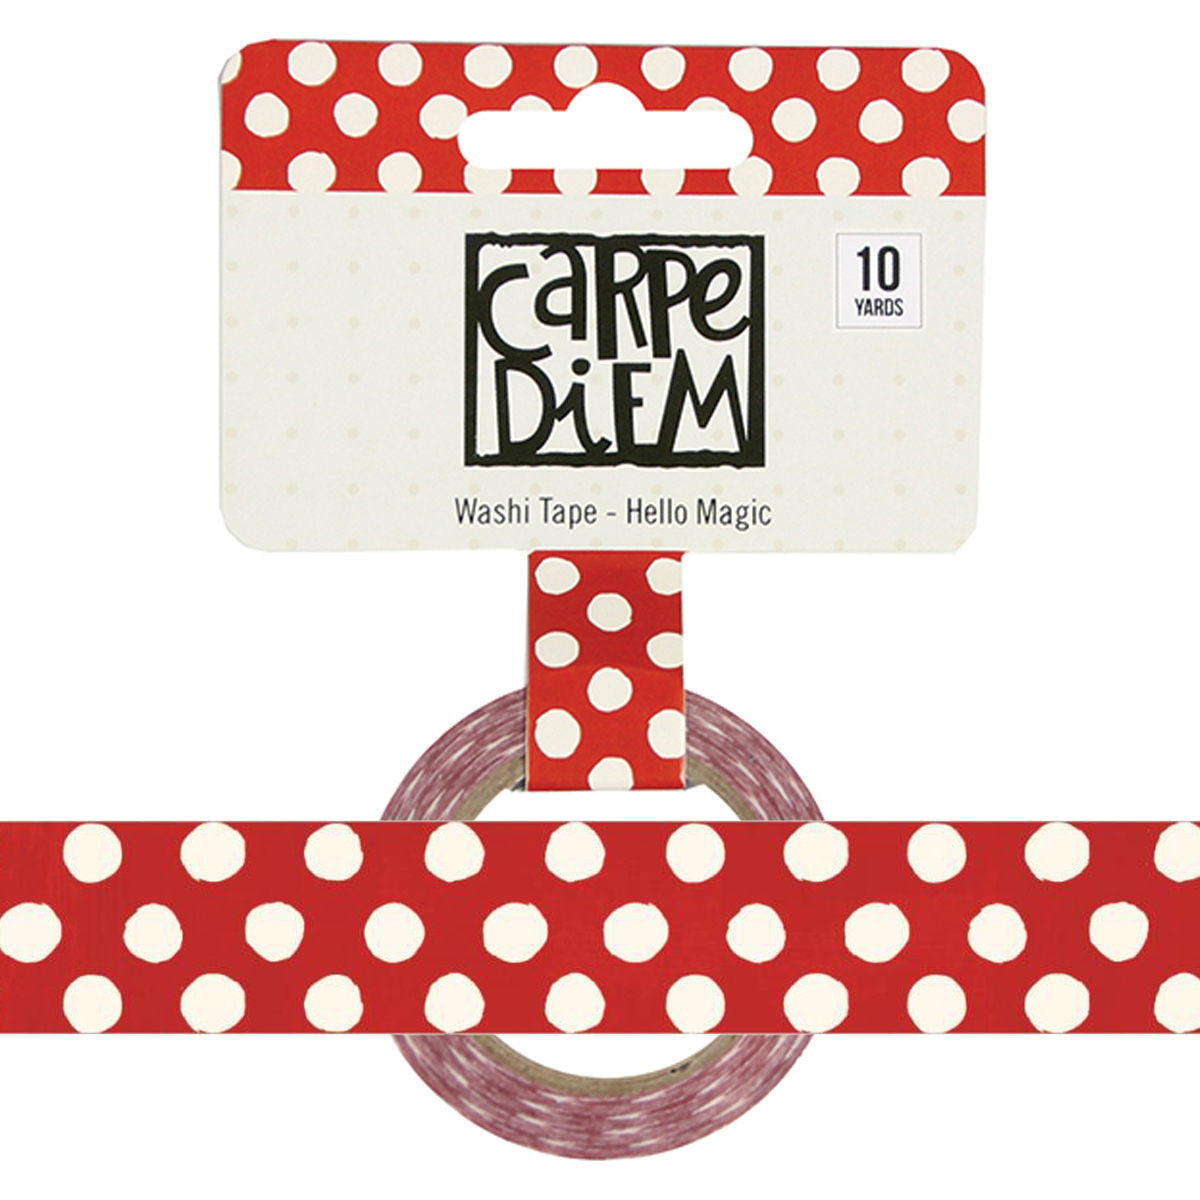 Say Cheese HELLO MAGIC Red Polkadot Carpe Diem Washi Tape, 15mm x 10 yards